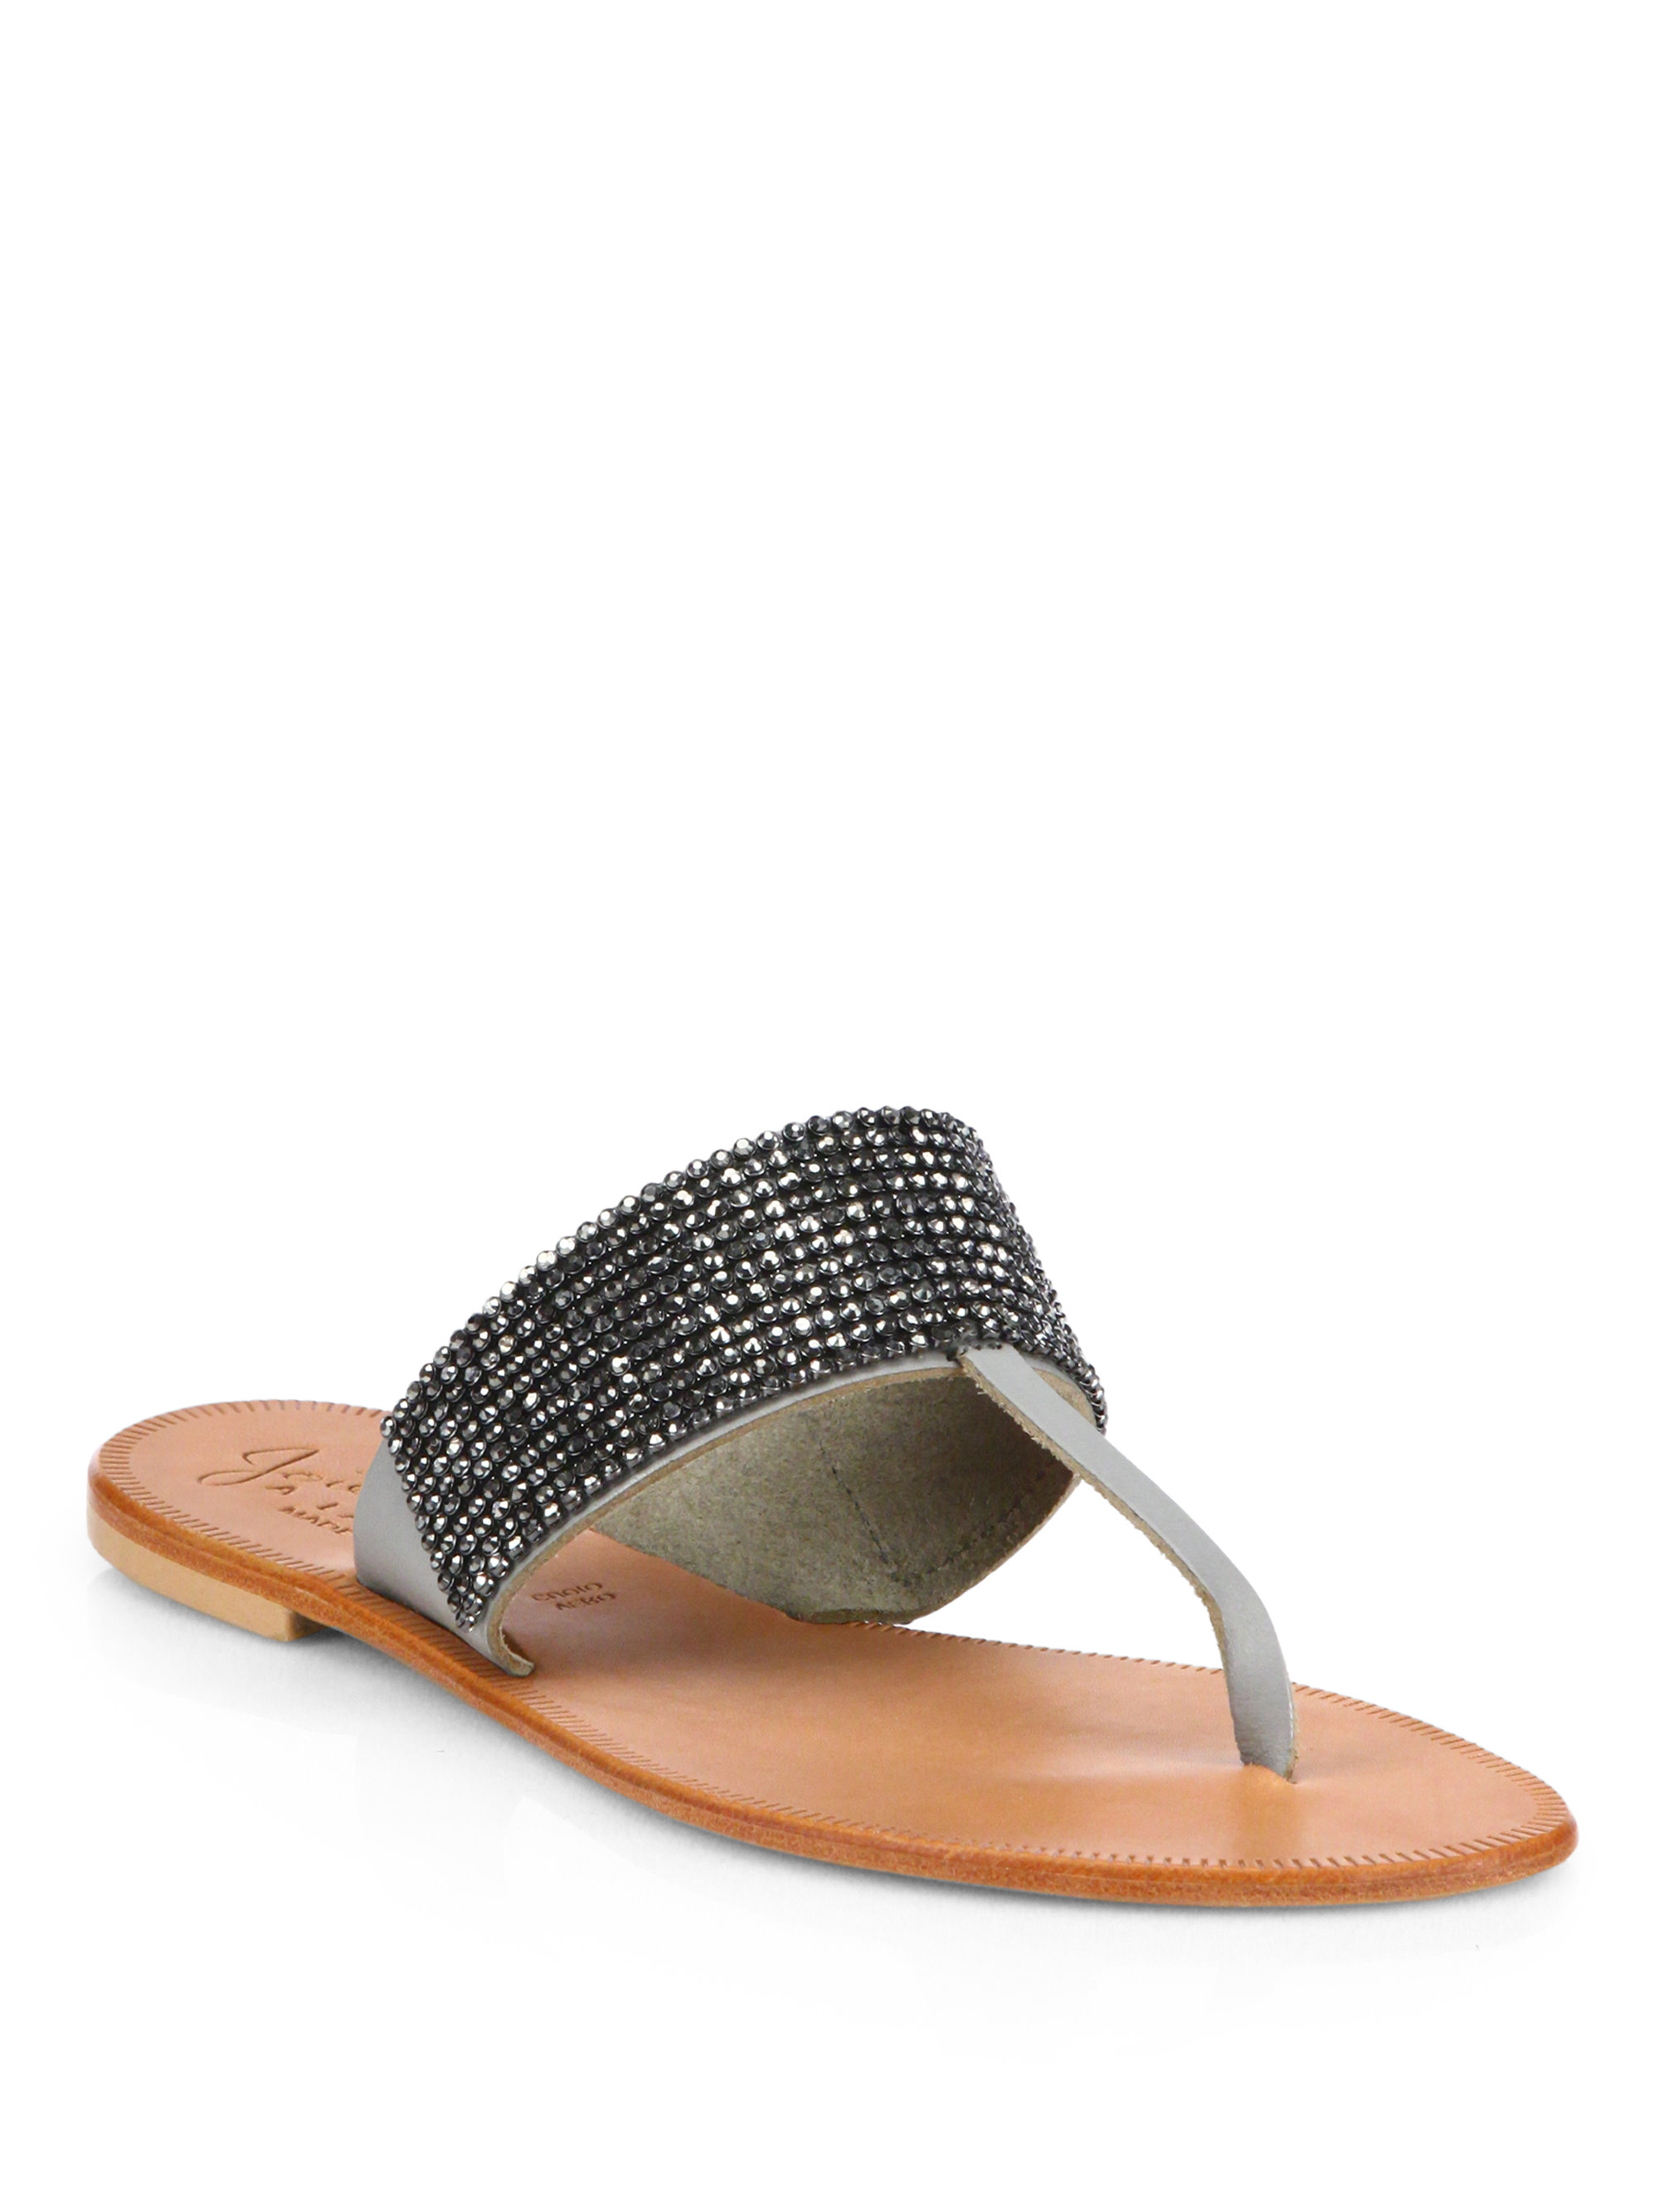 Joie Nice Metallic Leather Thong Sandals AETW1i